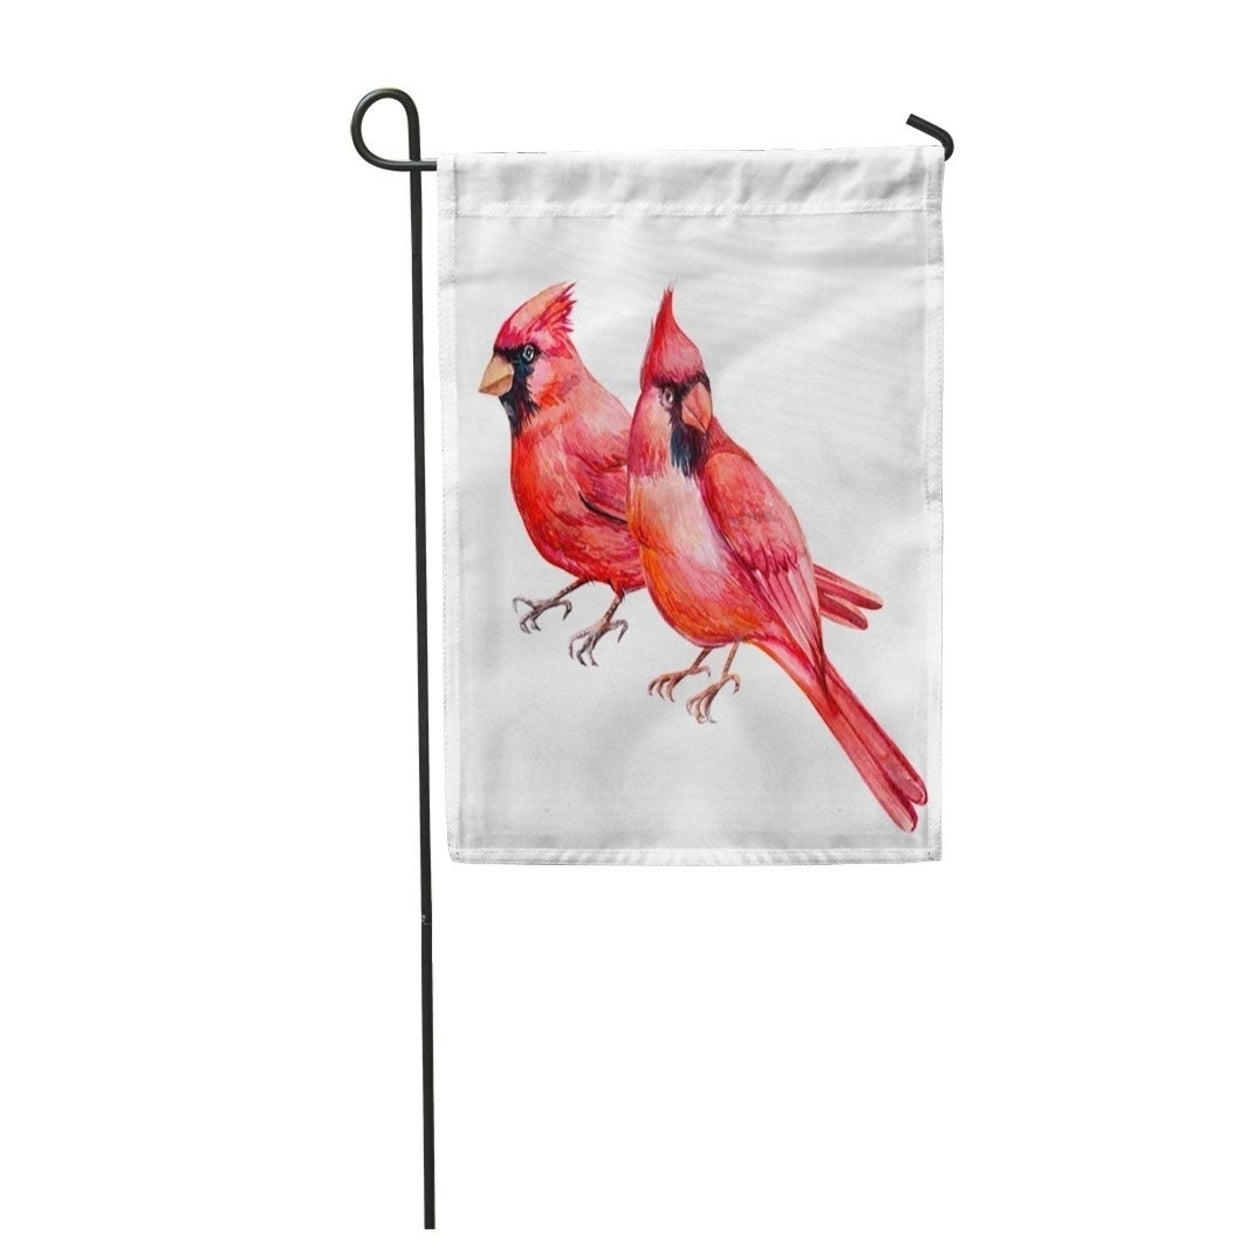 Red cardinal bird on branch bunting paper buntings 12 flags Party decorations Room decor indoor home decoration